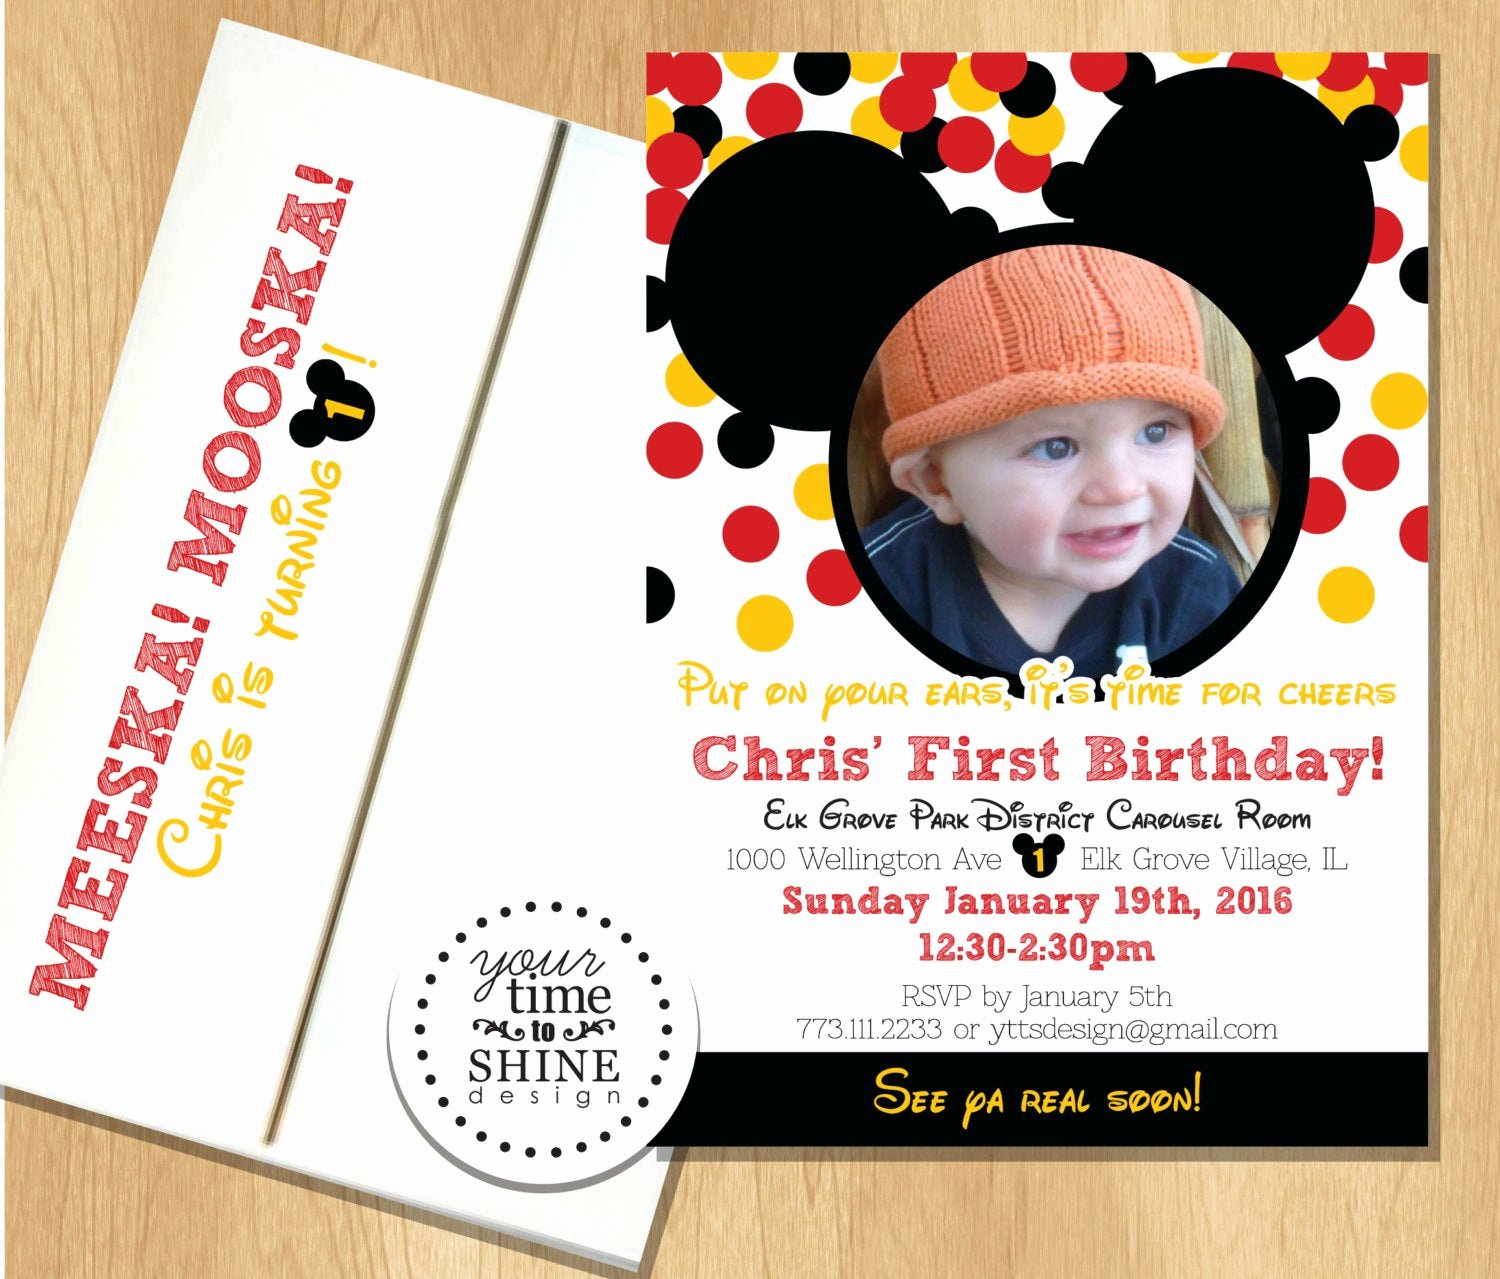 Mickey Mouse Picture Invitations Beautiful Mickey Mouse Birthday Invitations with Picture